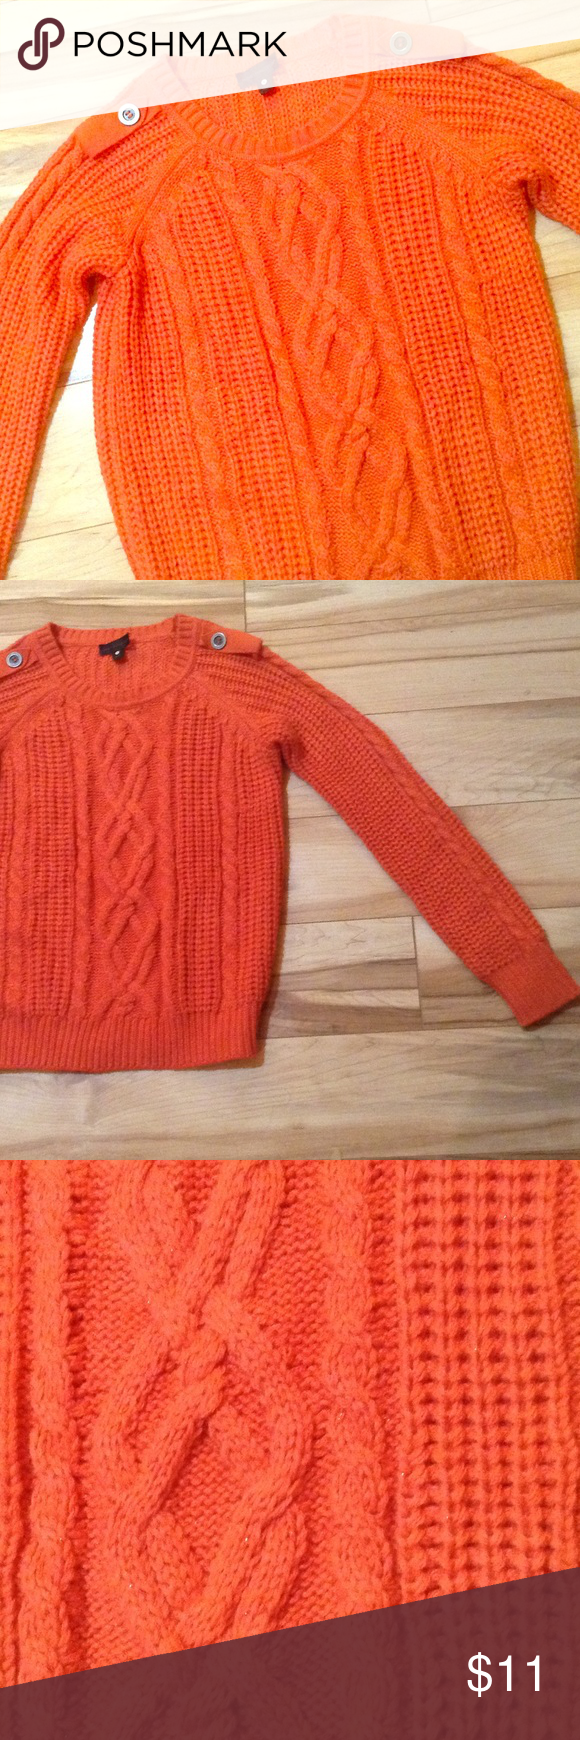 Cable Sweater Cute Orange cable sweater by Worthington. The ...